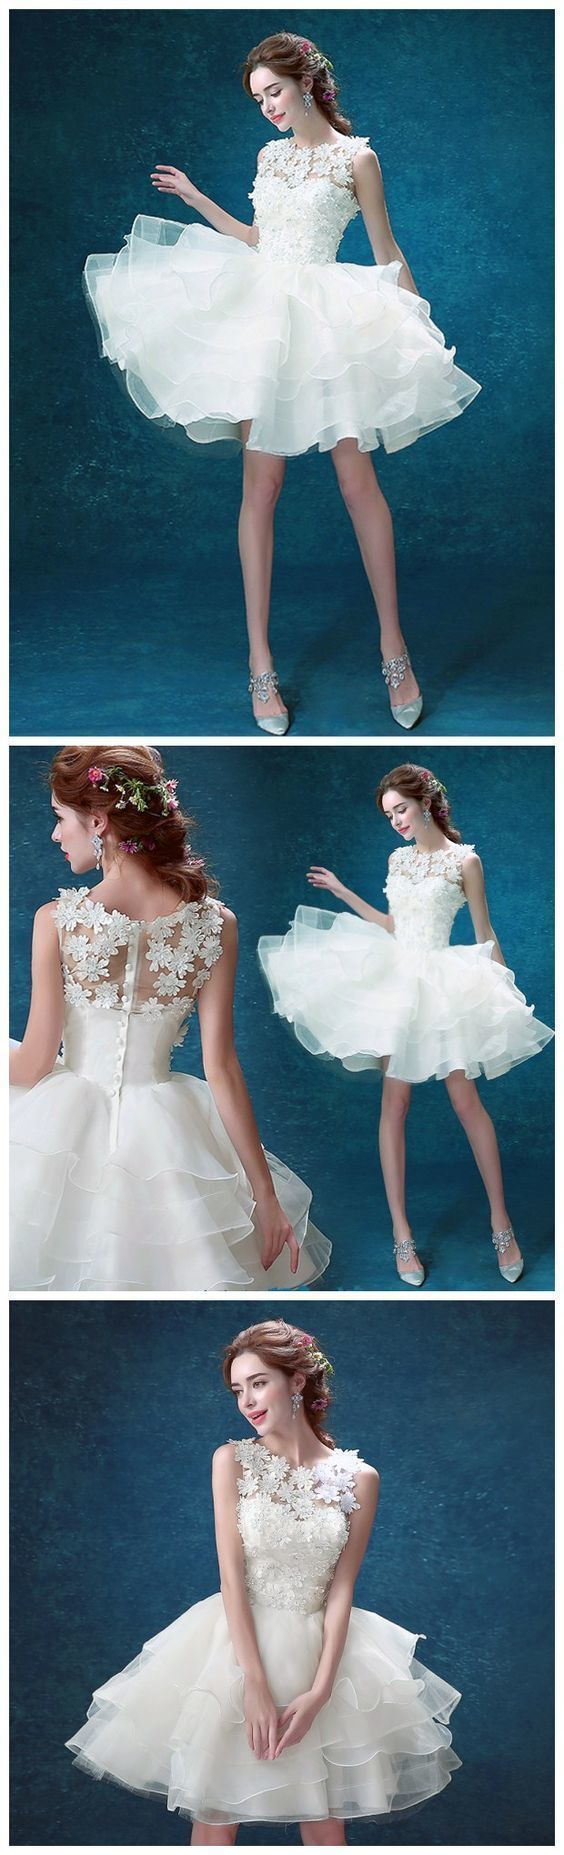 Chic Tulle Jewel Neckline Short A-line Homecoming Dresses With Flowers